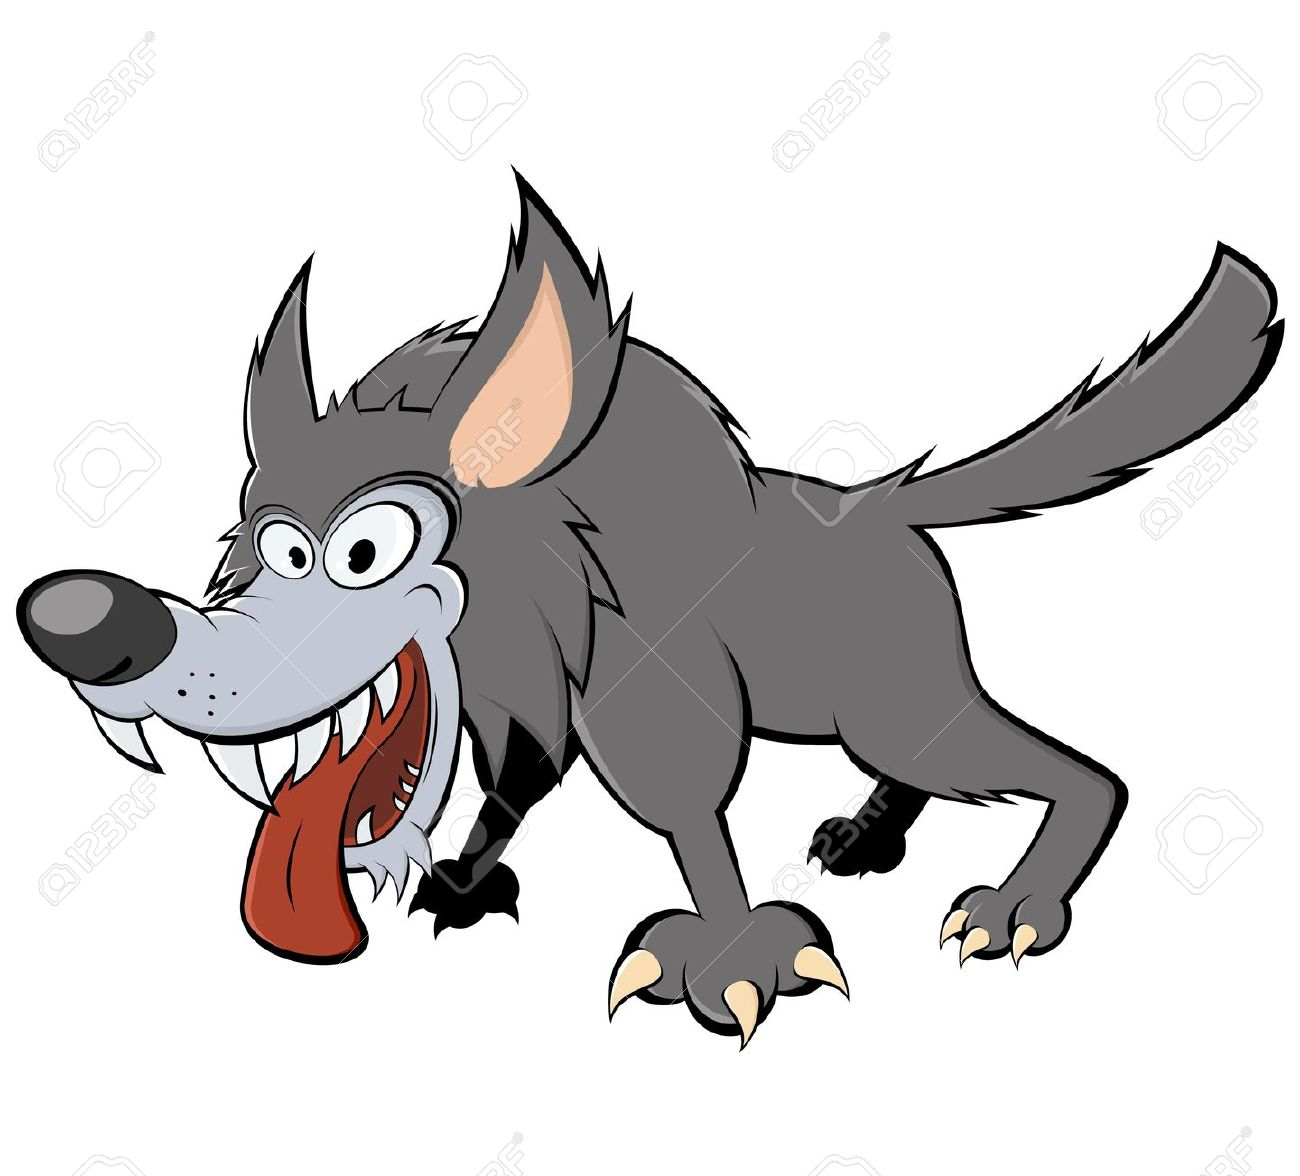 Loup clipart royalty free library Loup clipart 8 » Clipart Station royalty free library